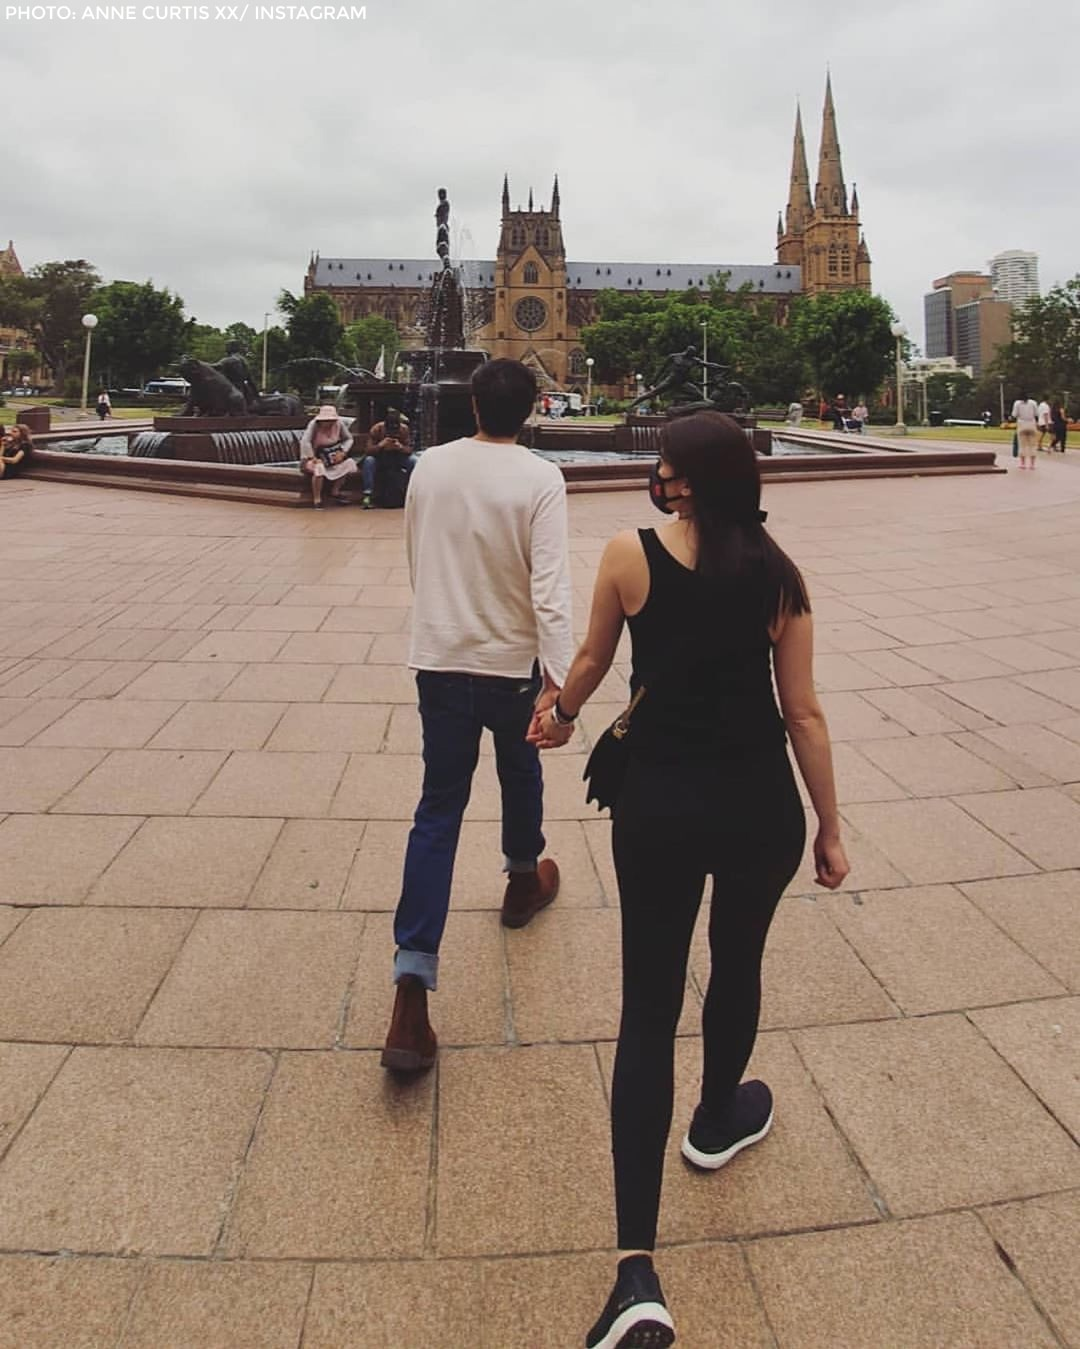 Anne and Erwan enjoy the sights in Australia 4